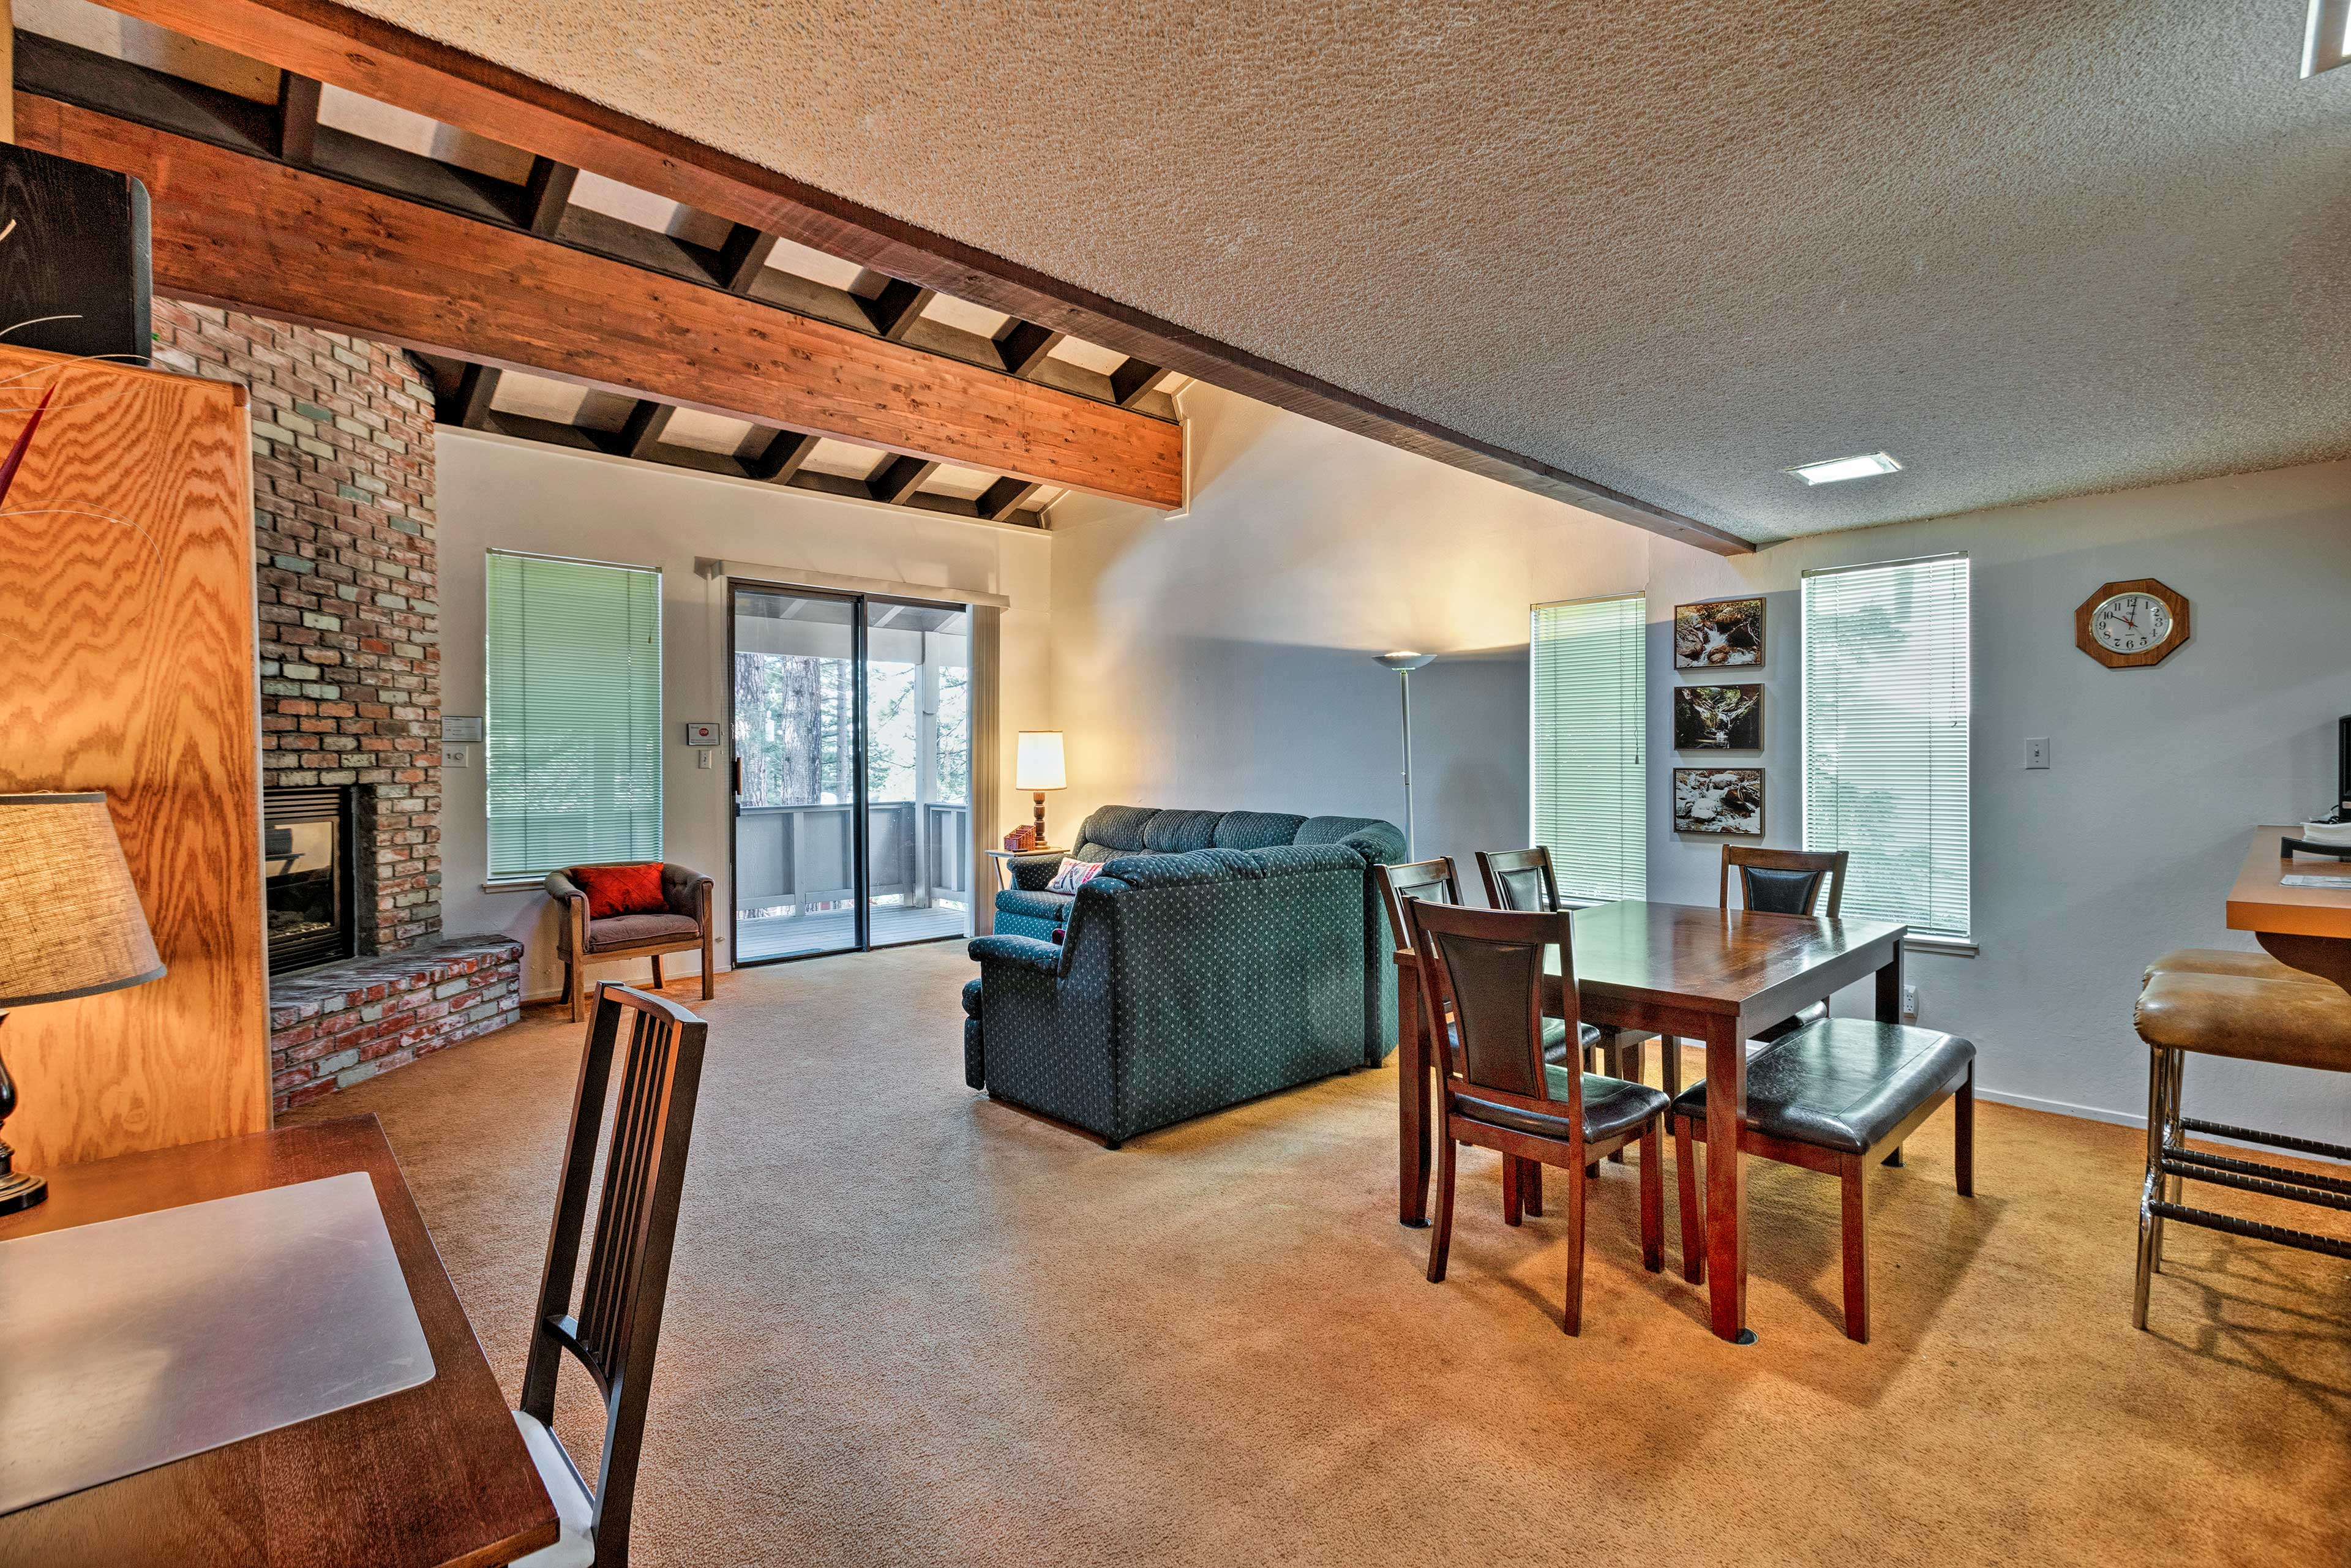 The living space includes a work space and dining table with room for 6.